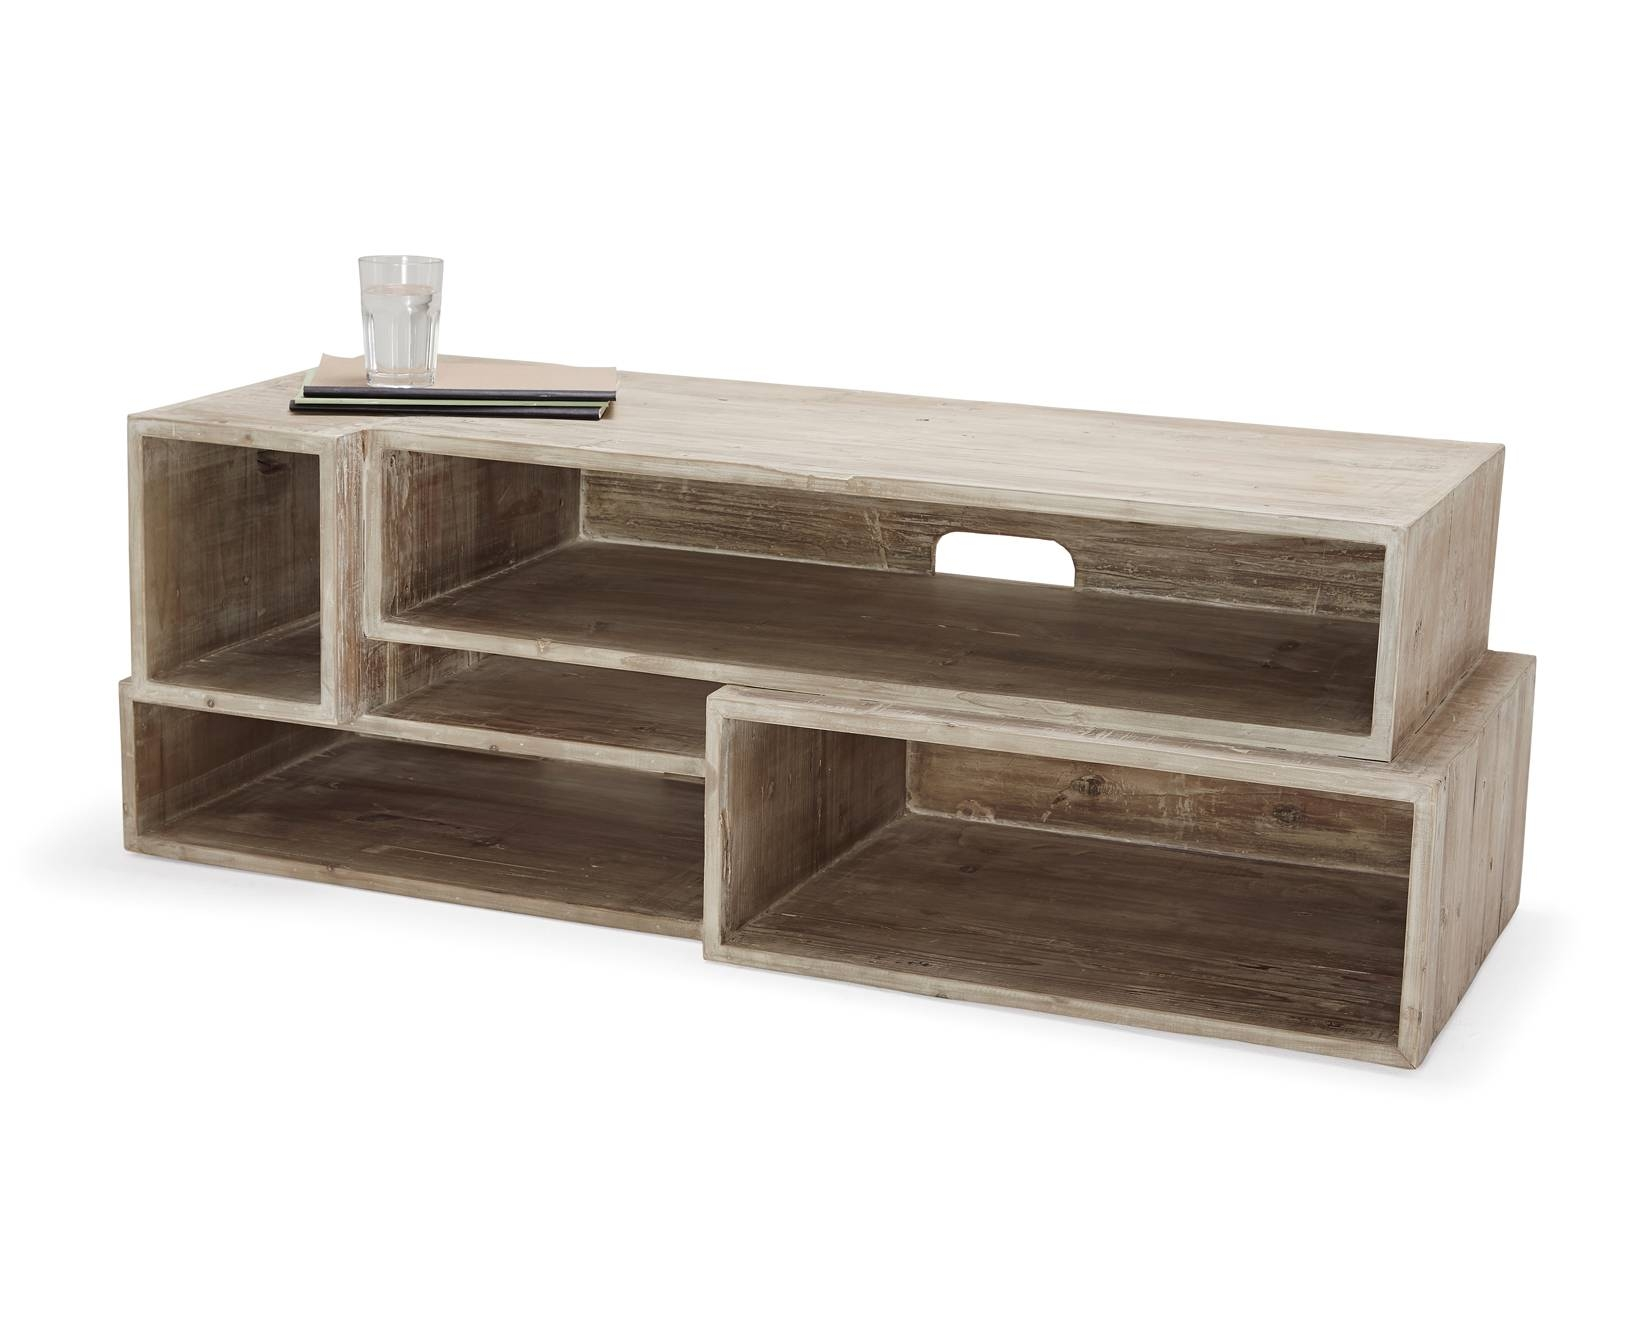 Goggle Mate Tv Stand | Crate Style Tv Stand | Loaf inside Cheap Wood Tv Stands (Image 6 of 15)